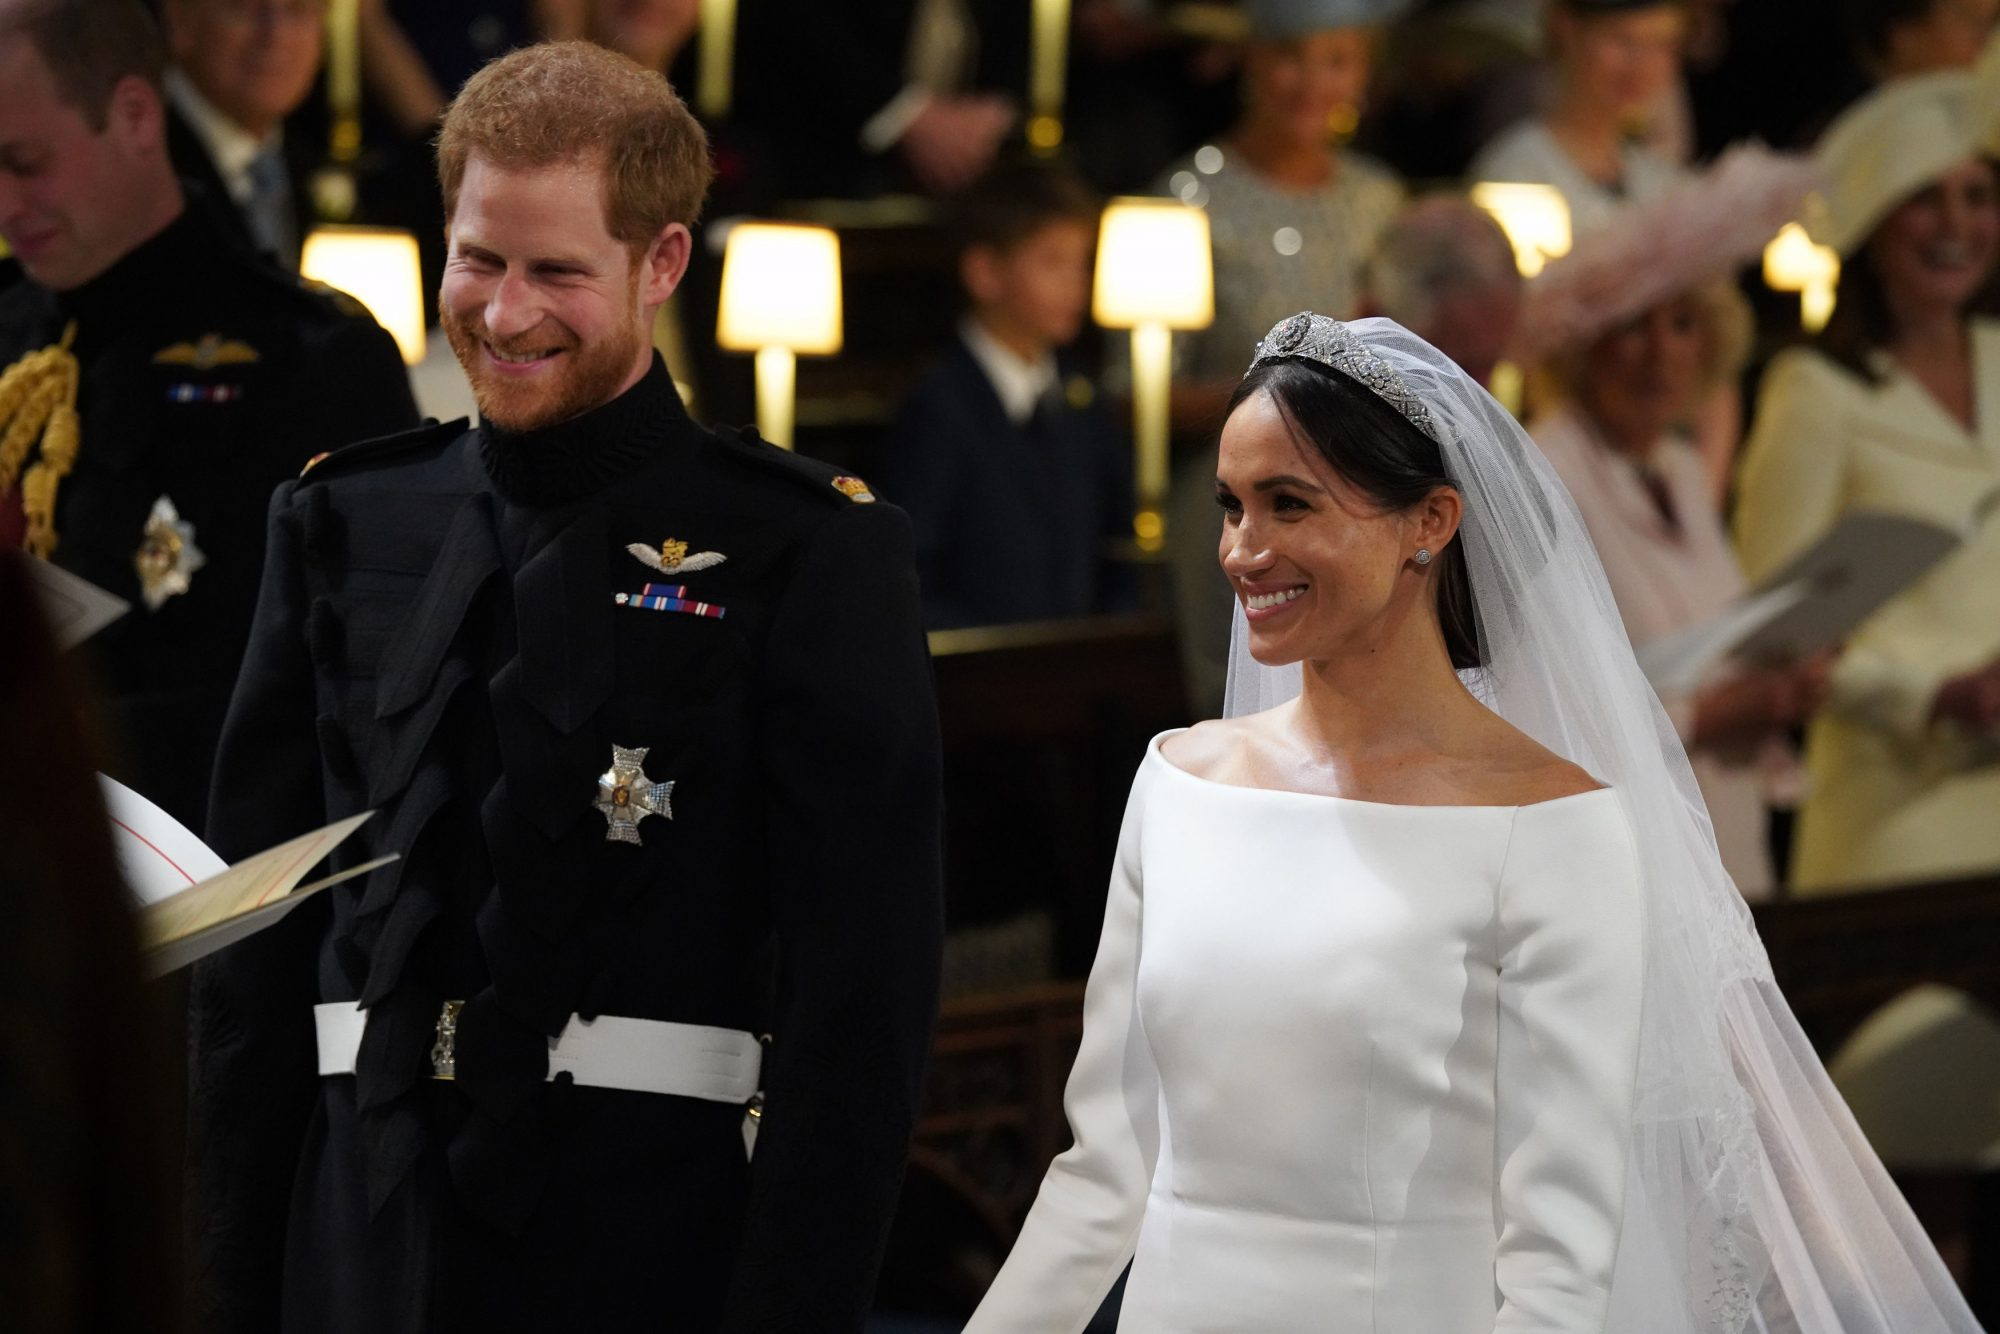 Meghan Markle and Princess Harry Wedding Day